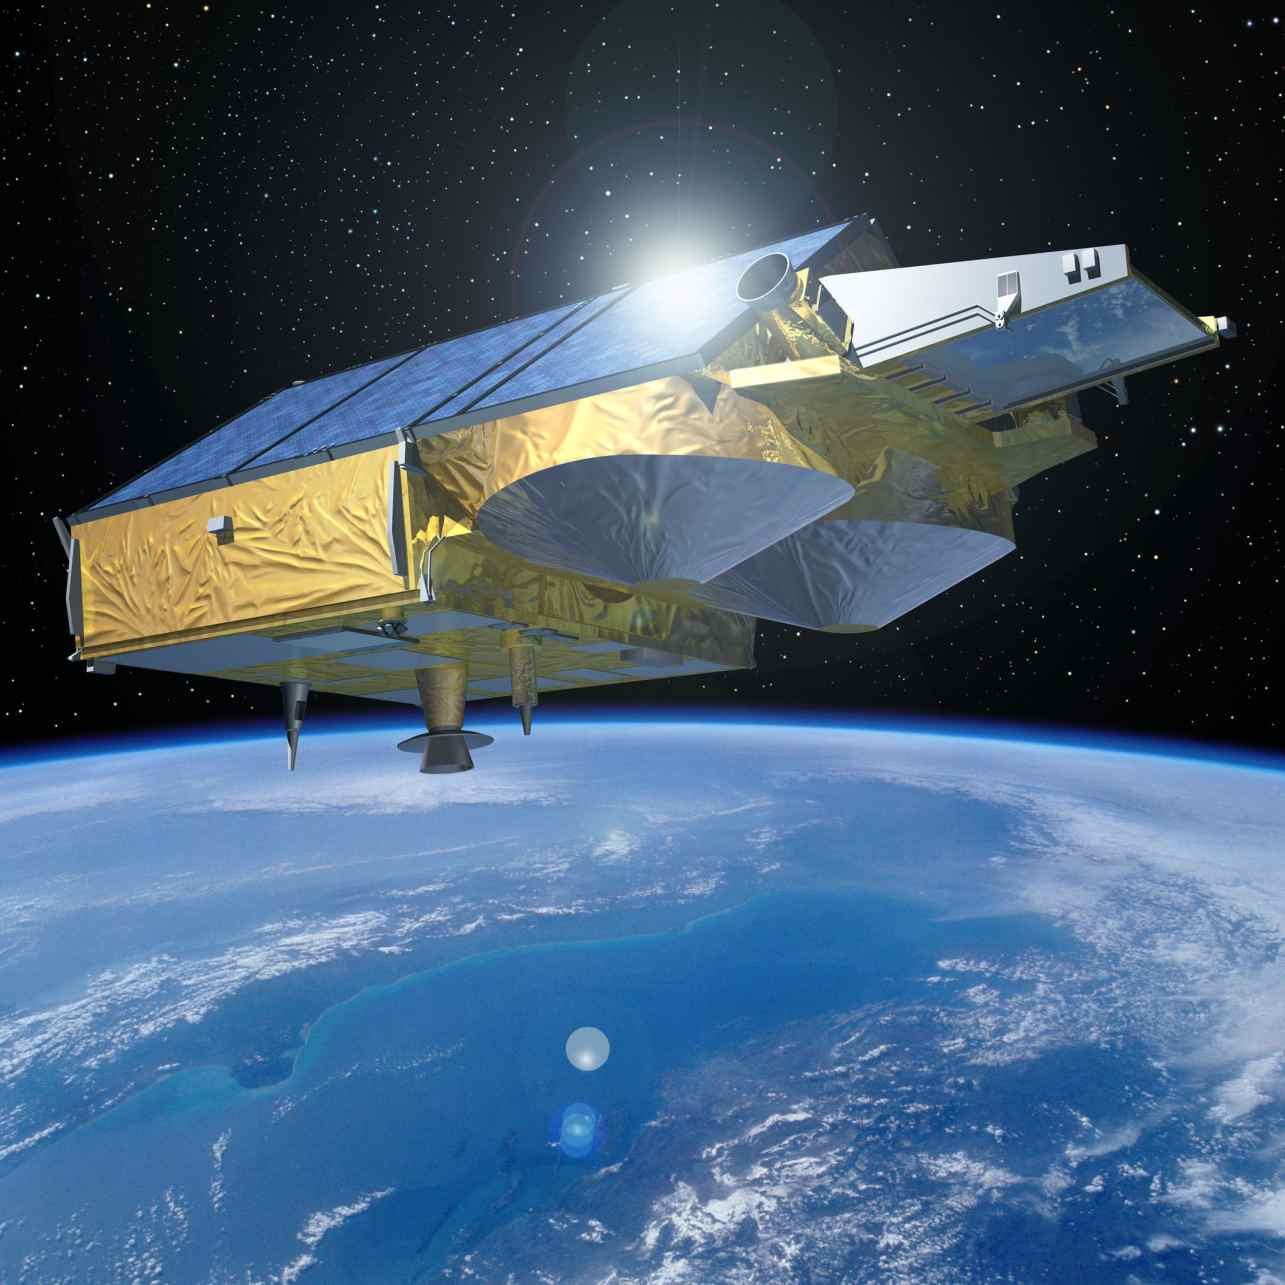 DORIS satellite: CRYOSAT-2